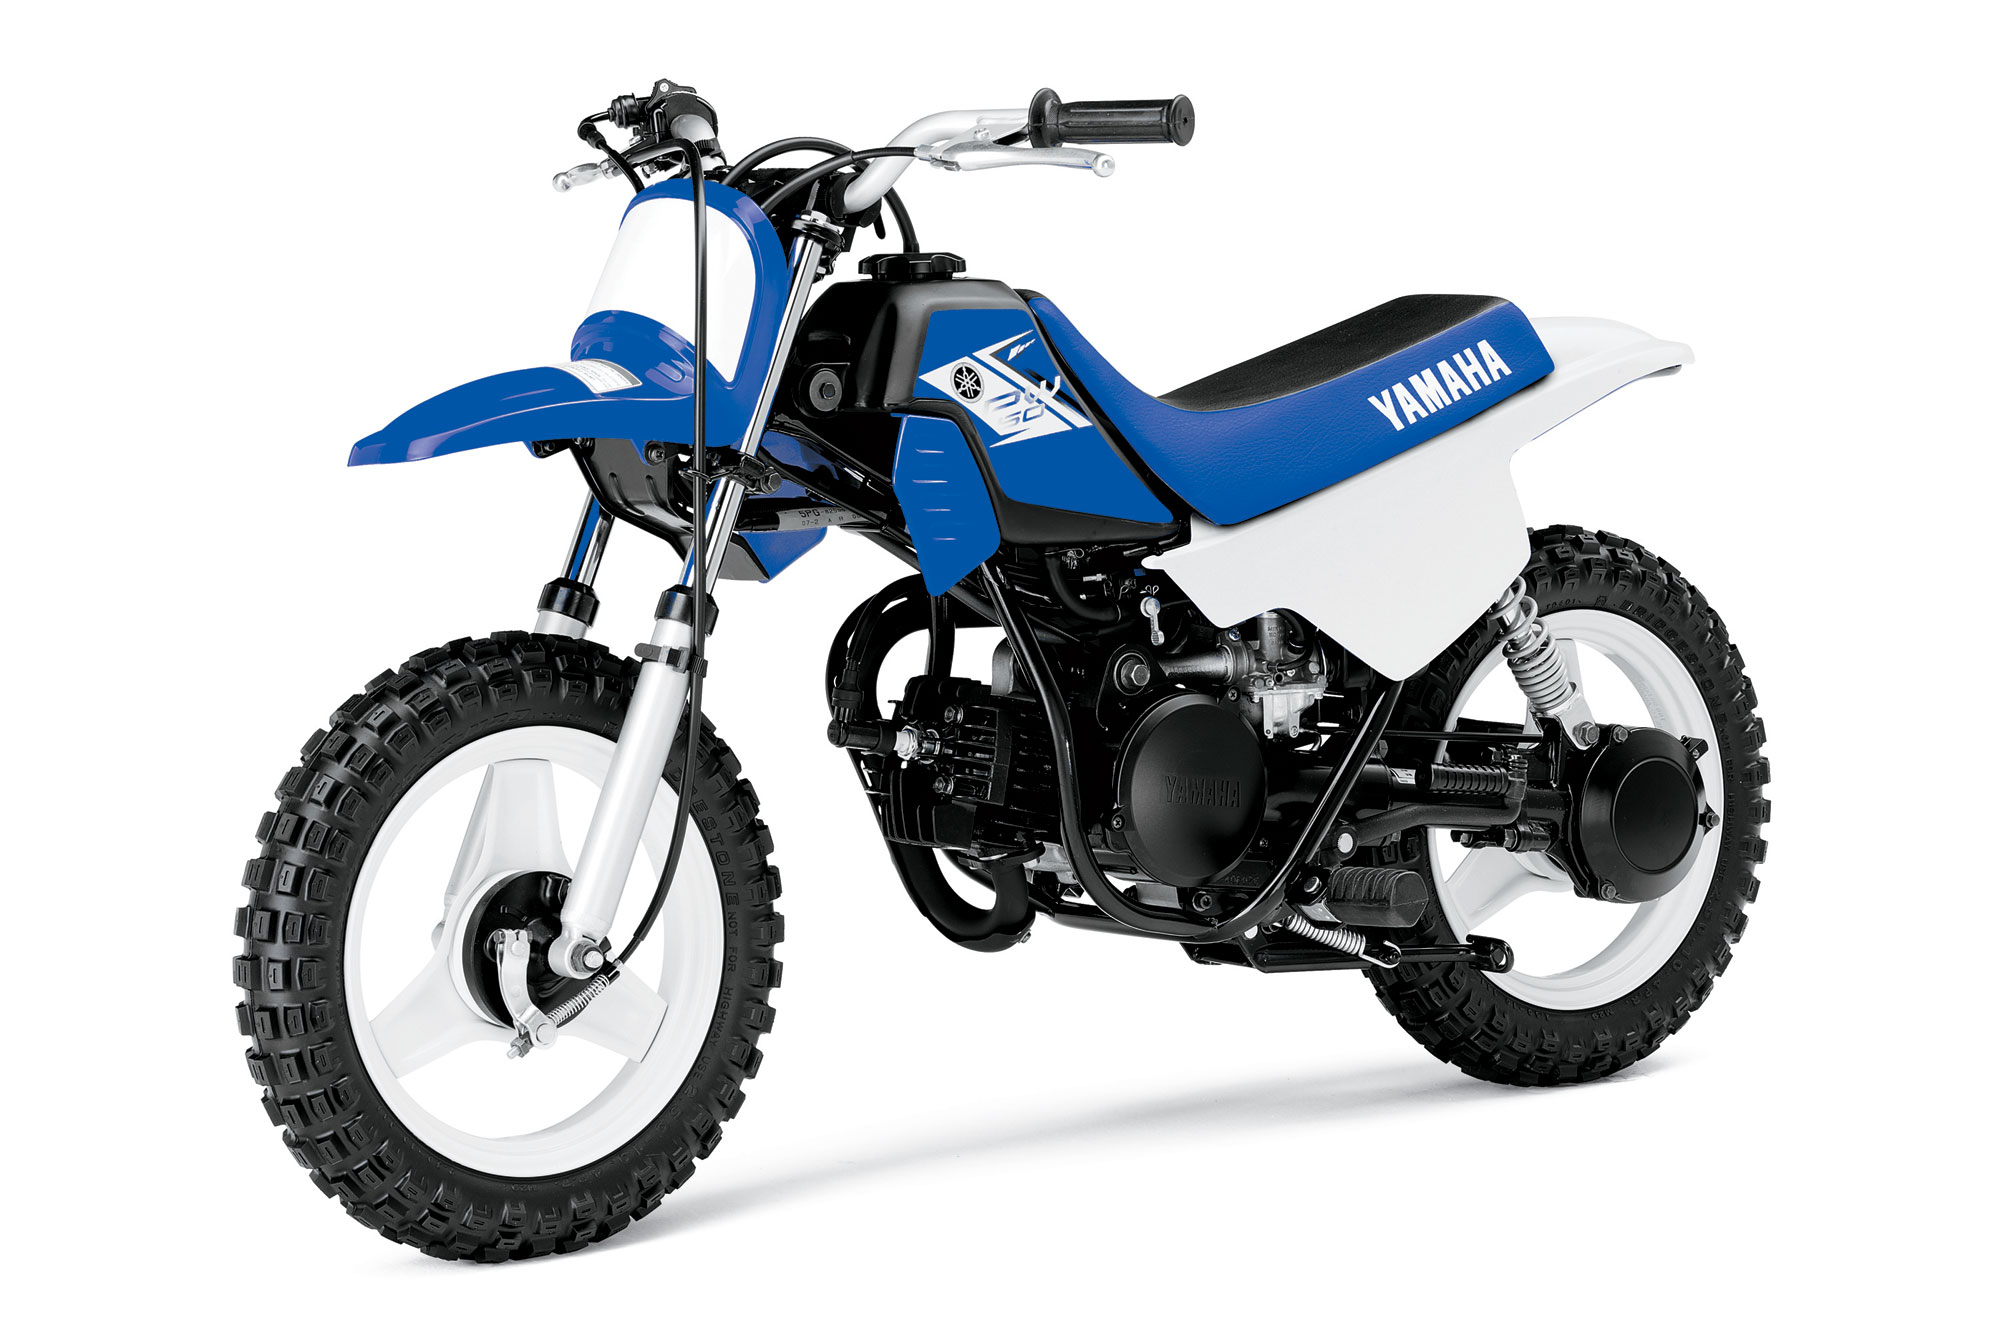 2013 yamaha pw50 2 stroke review for Yamaha 2 stroke